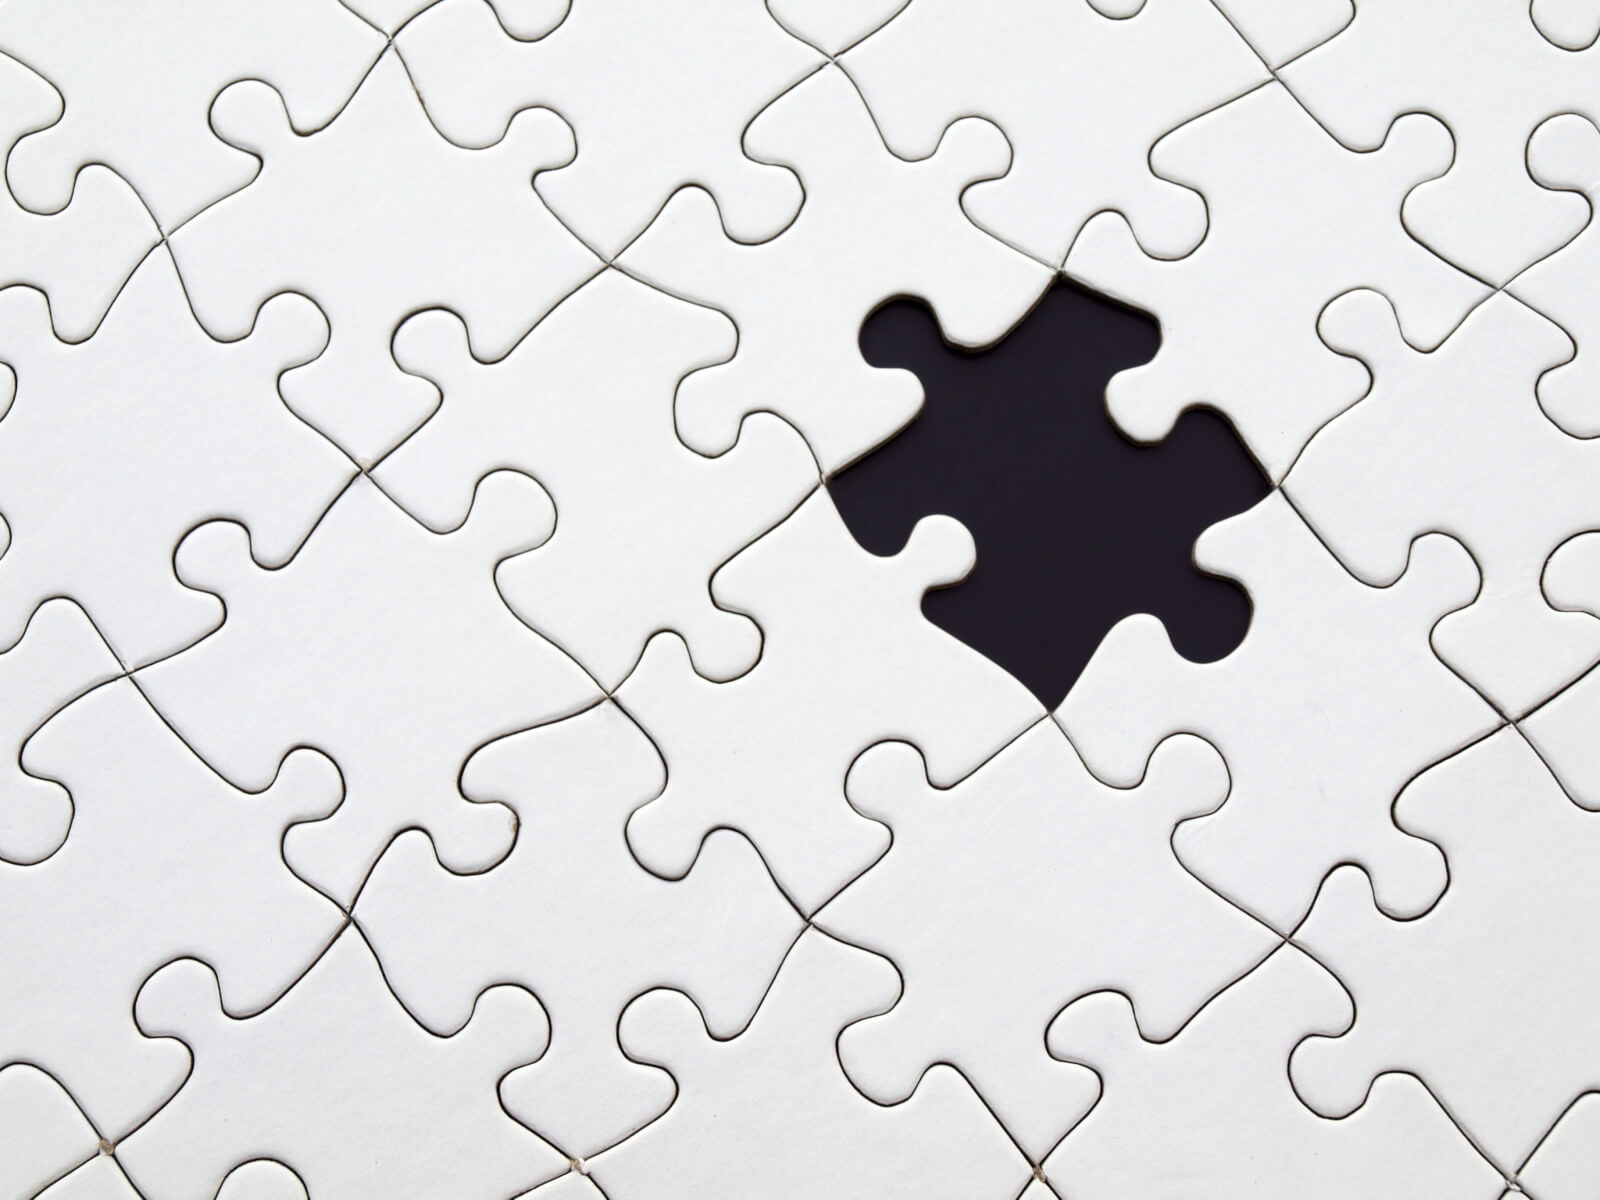 Fitting SEO pieces together - Blog Post Writing Brisbane